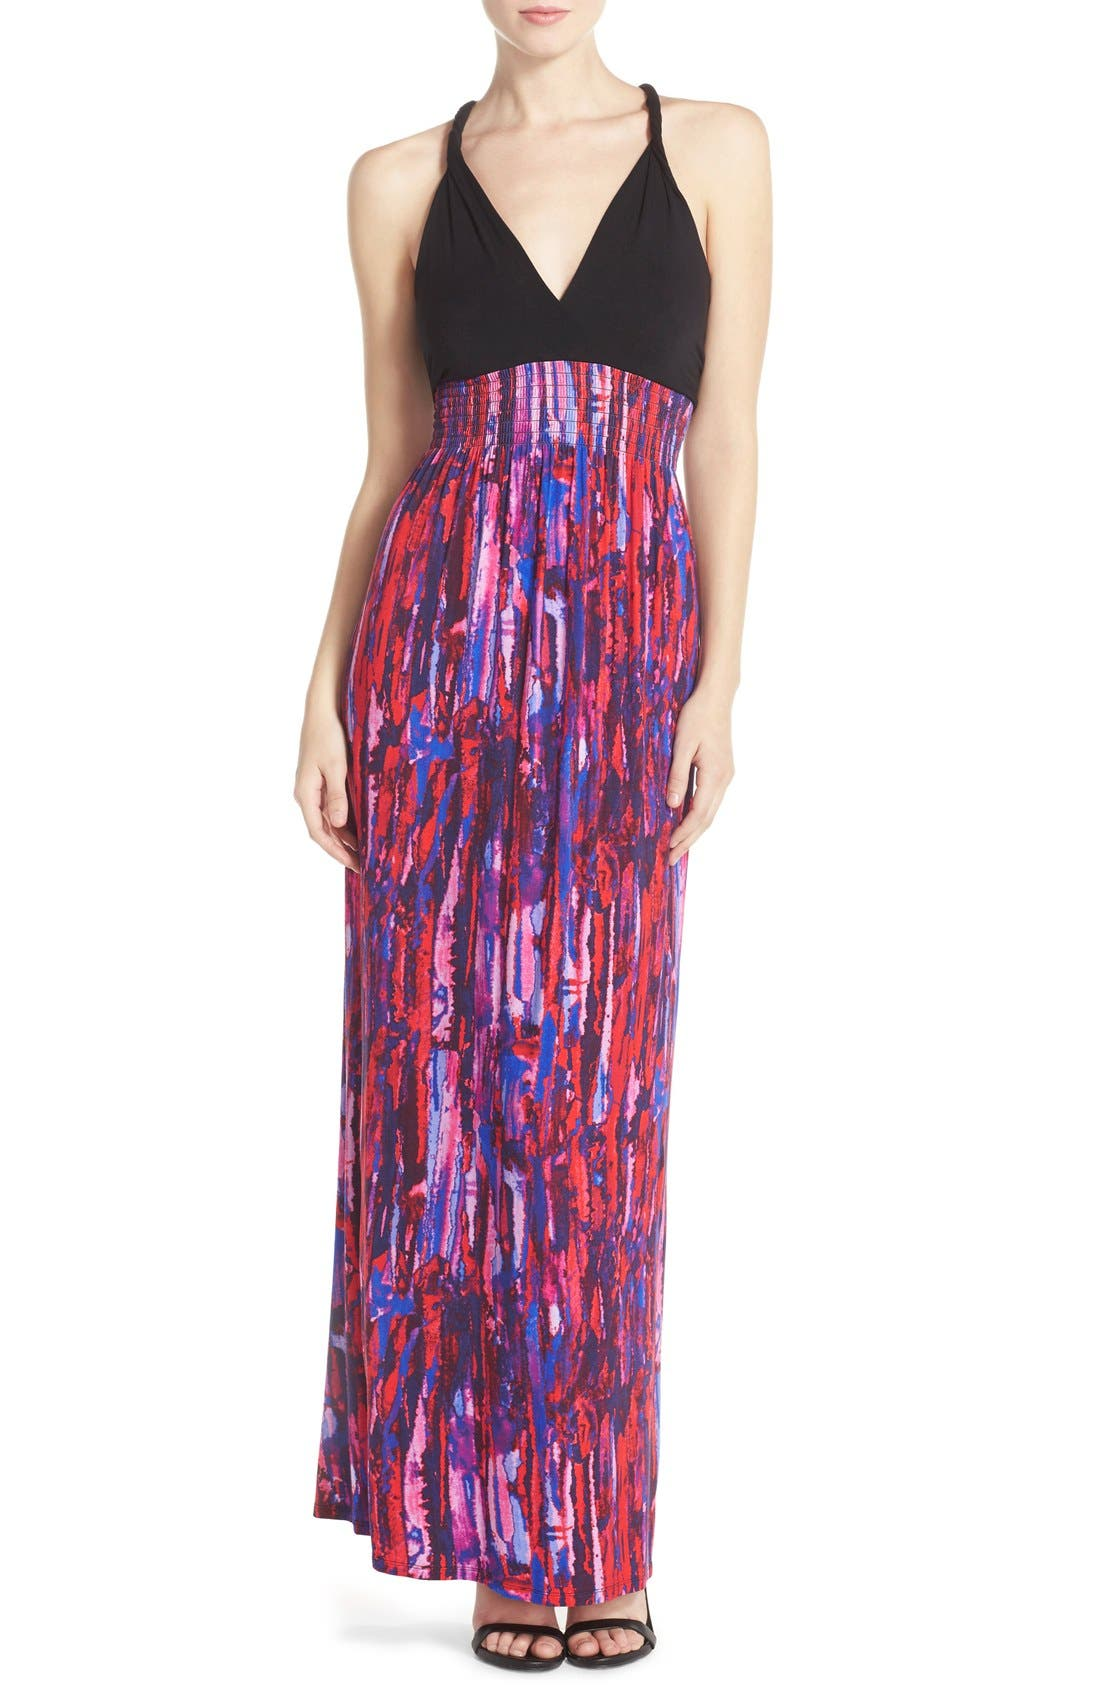 Main Image - Felicity & Coco Printed Maxi Dress (Regular & Petite) (Nordstrom Exclusive)